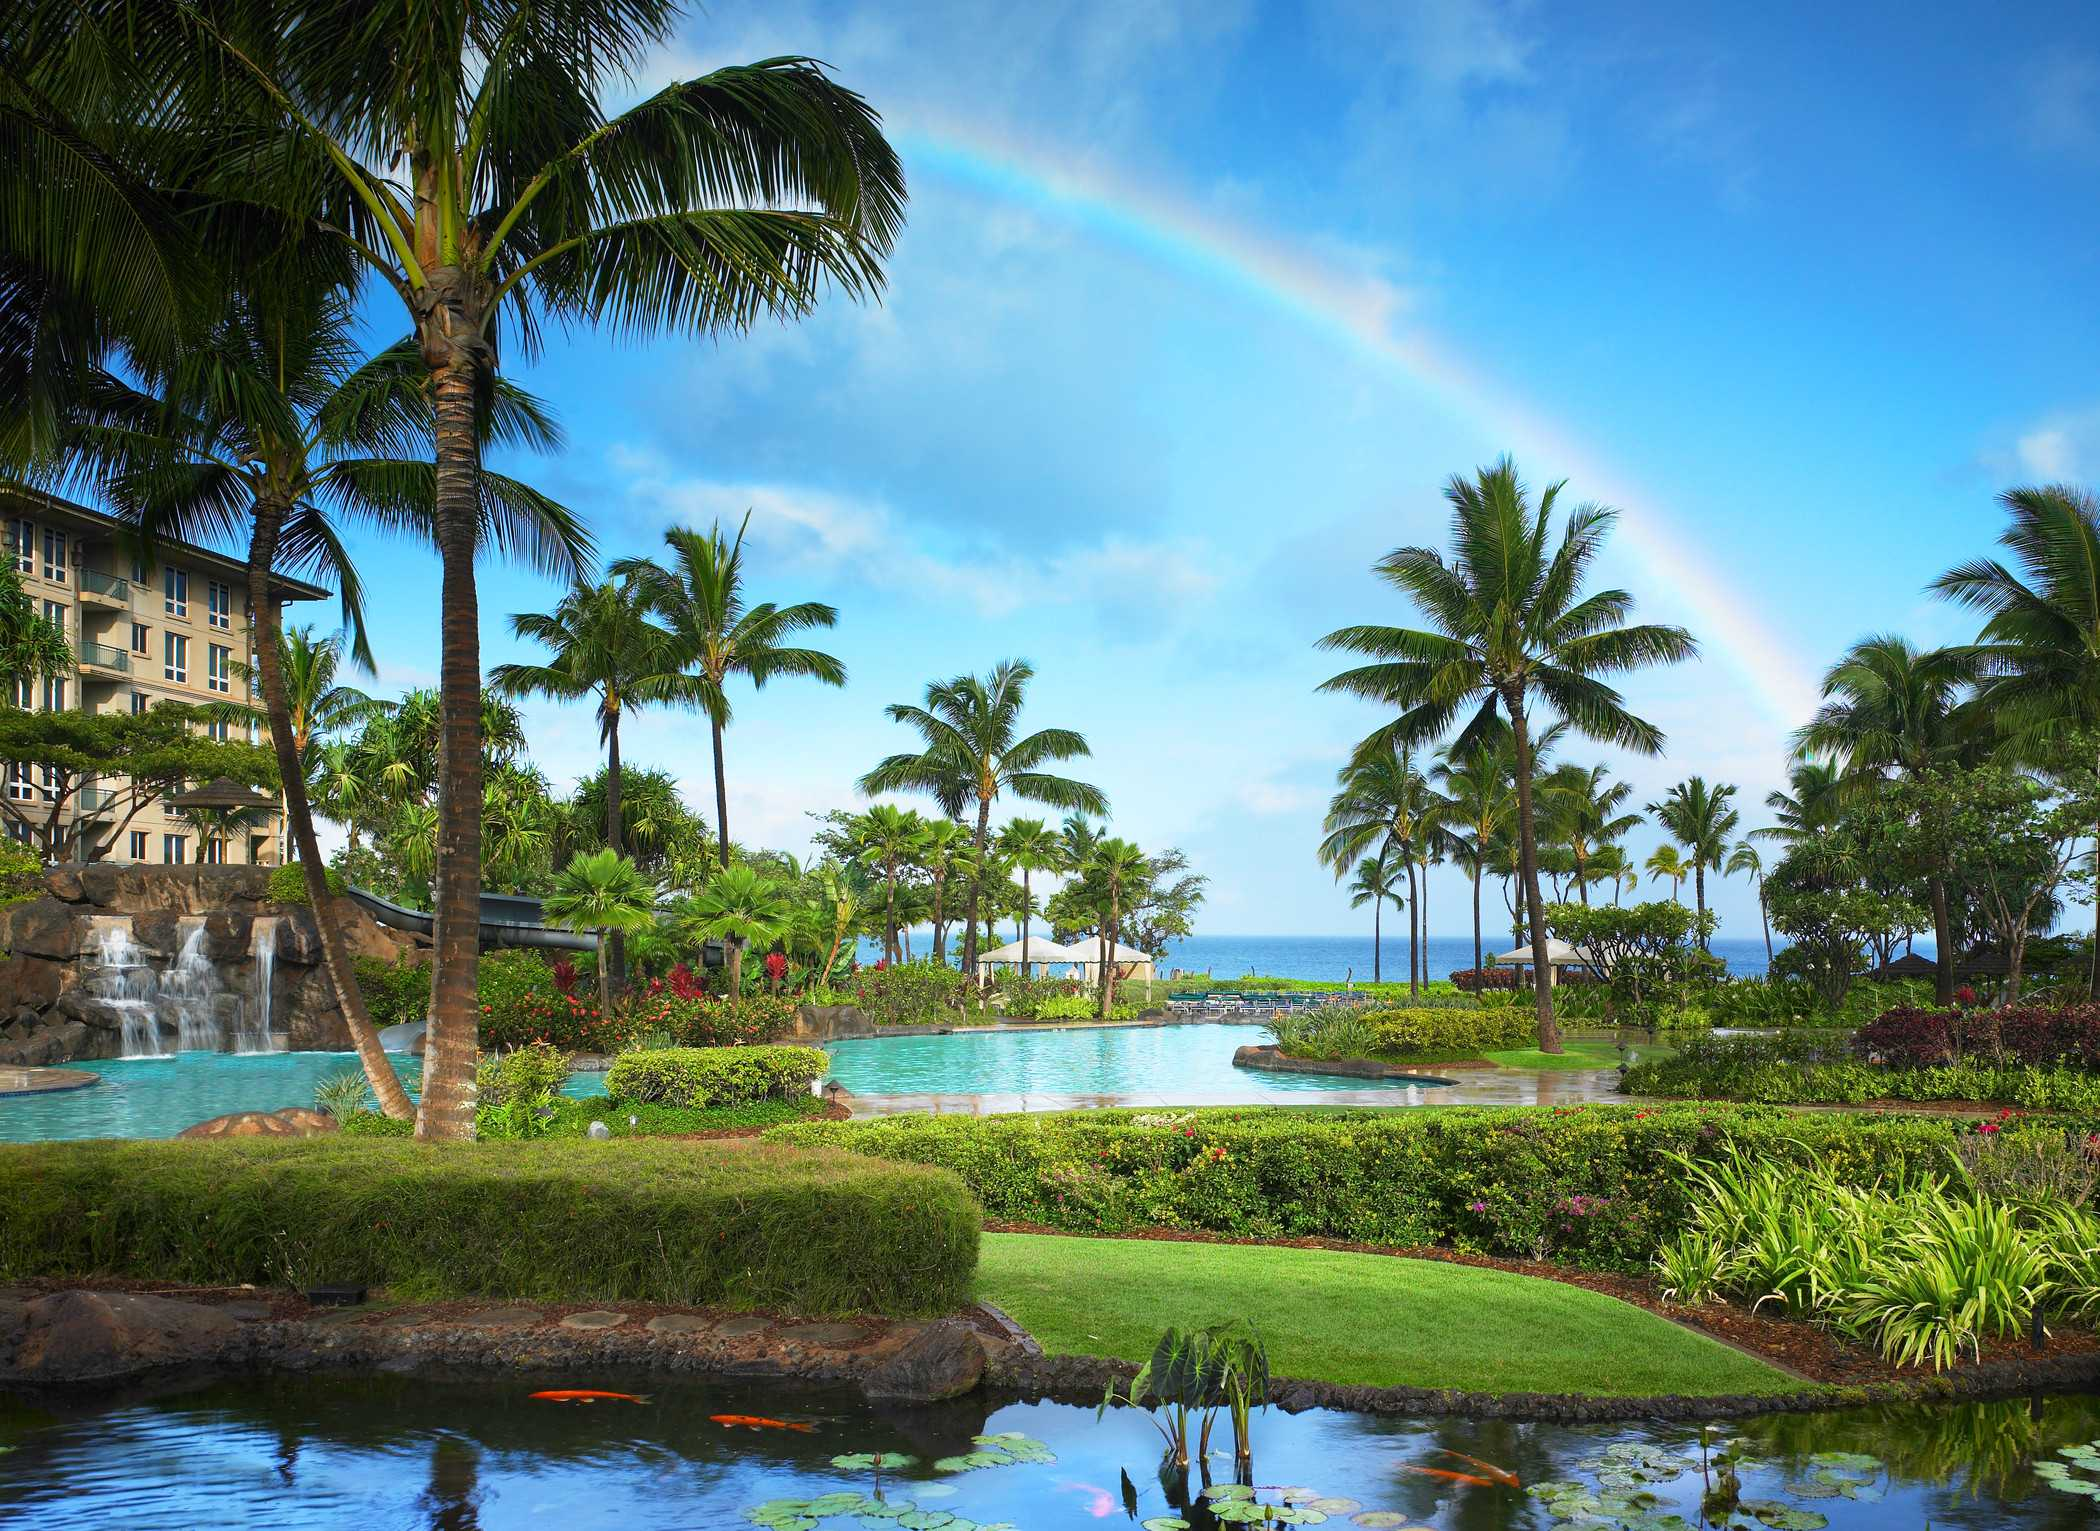 Westin Kaanapali Ocean Resort Foreclosure Update